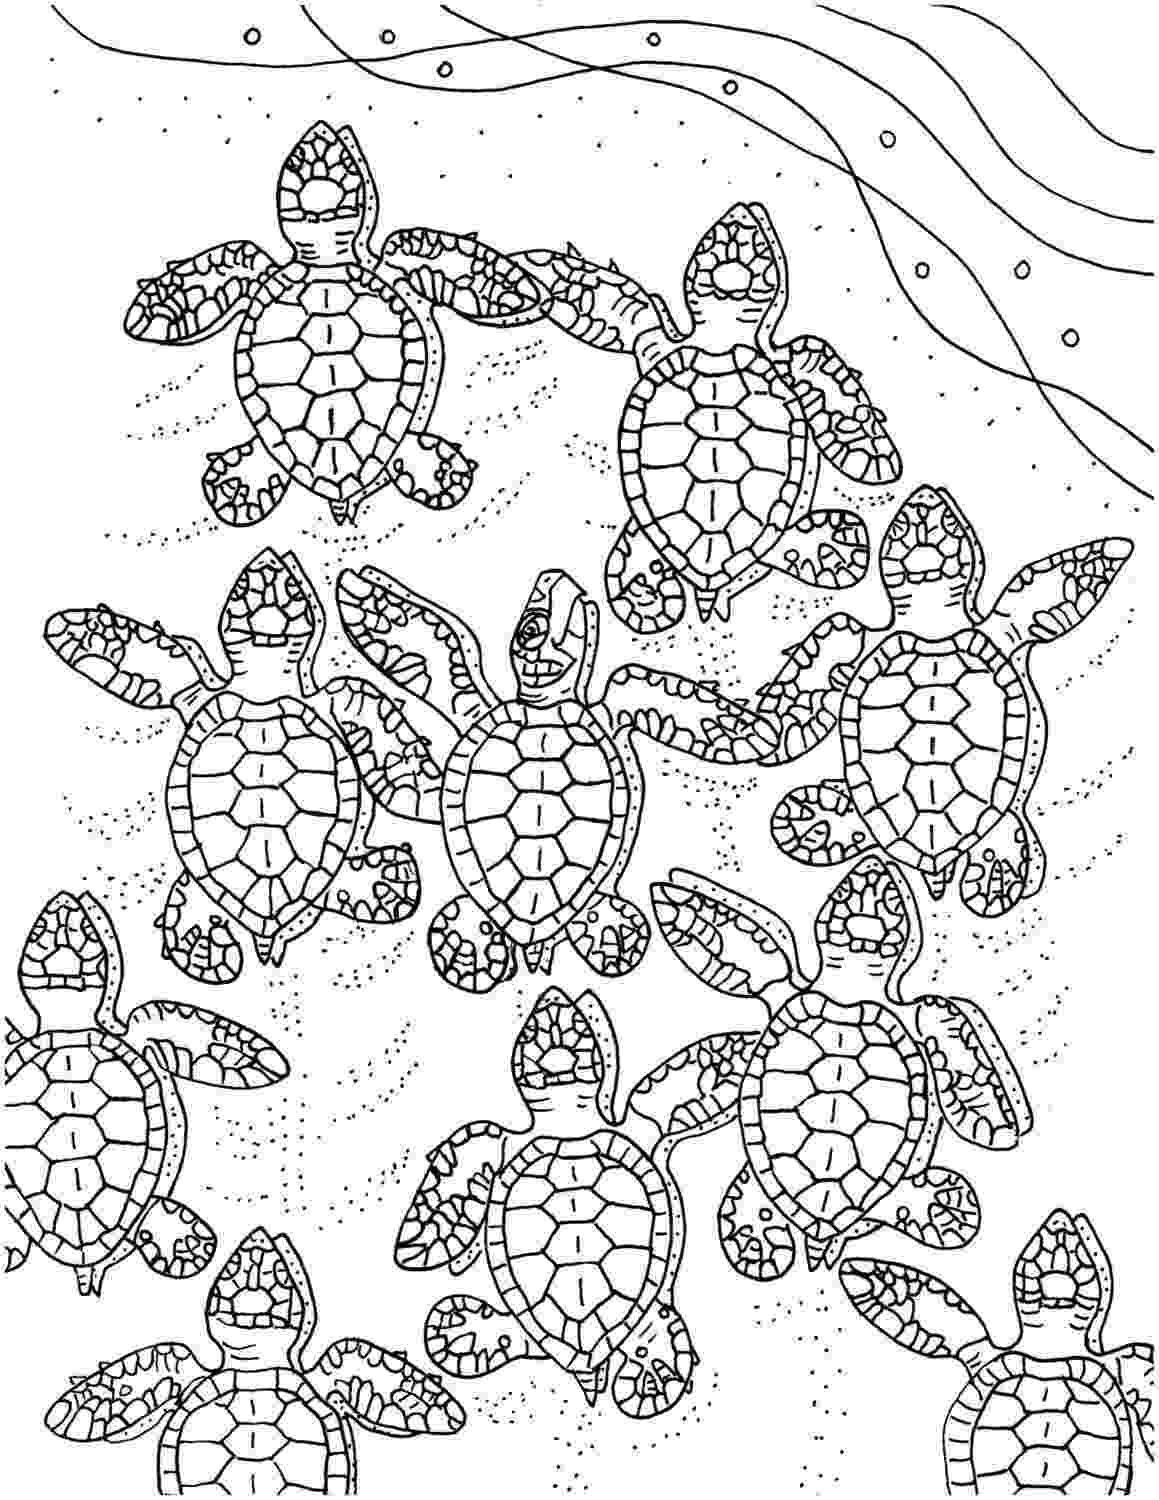 coloring pages of sea turtles baby sea turtles coloring page embroidery pattern sea coloring pages sea of turtles